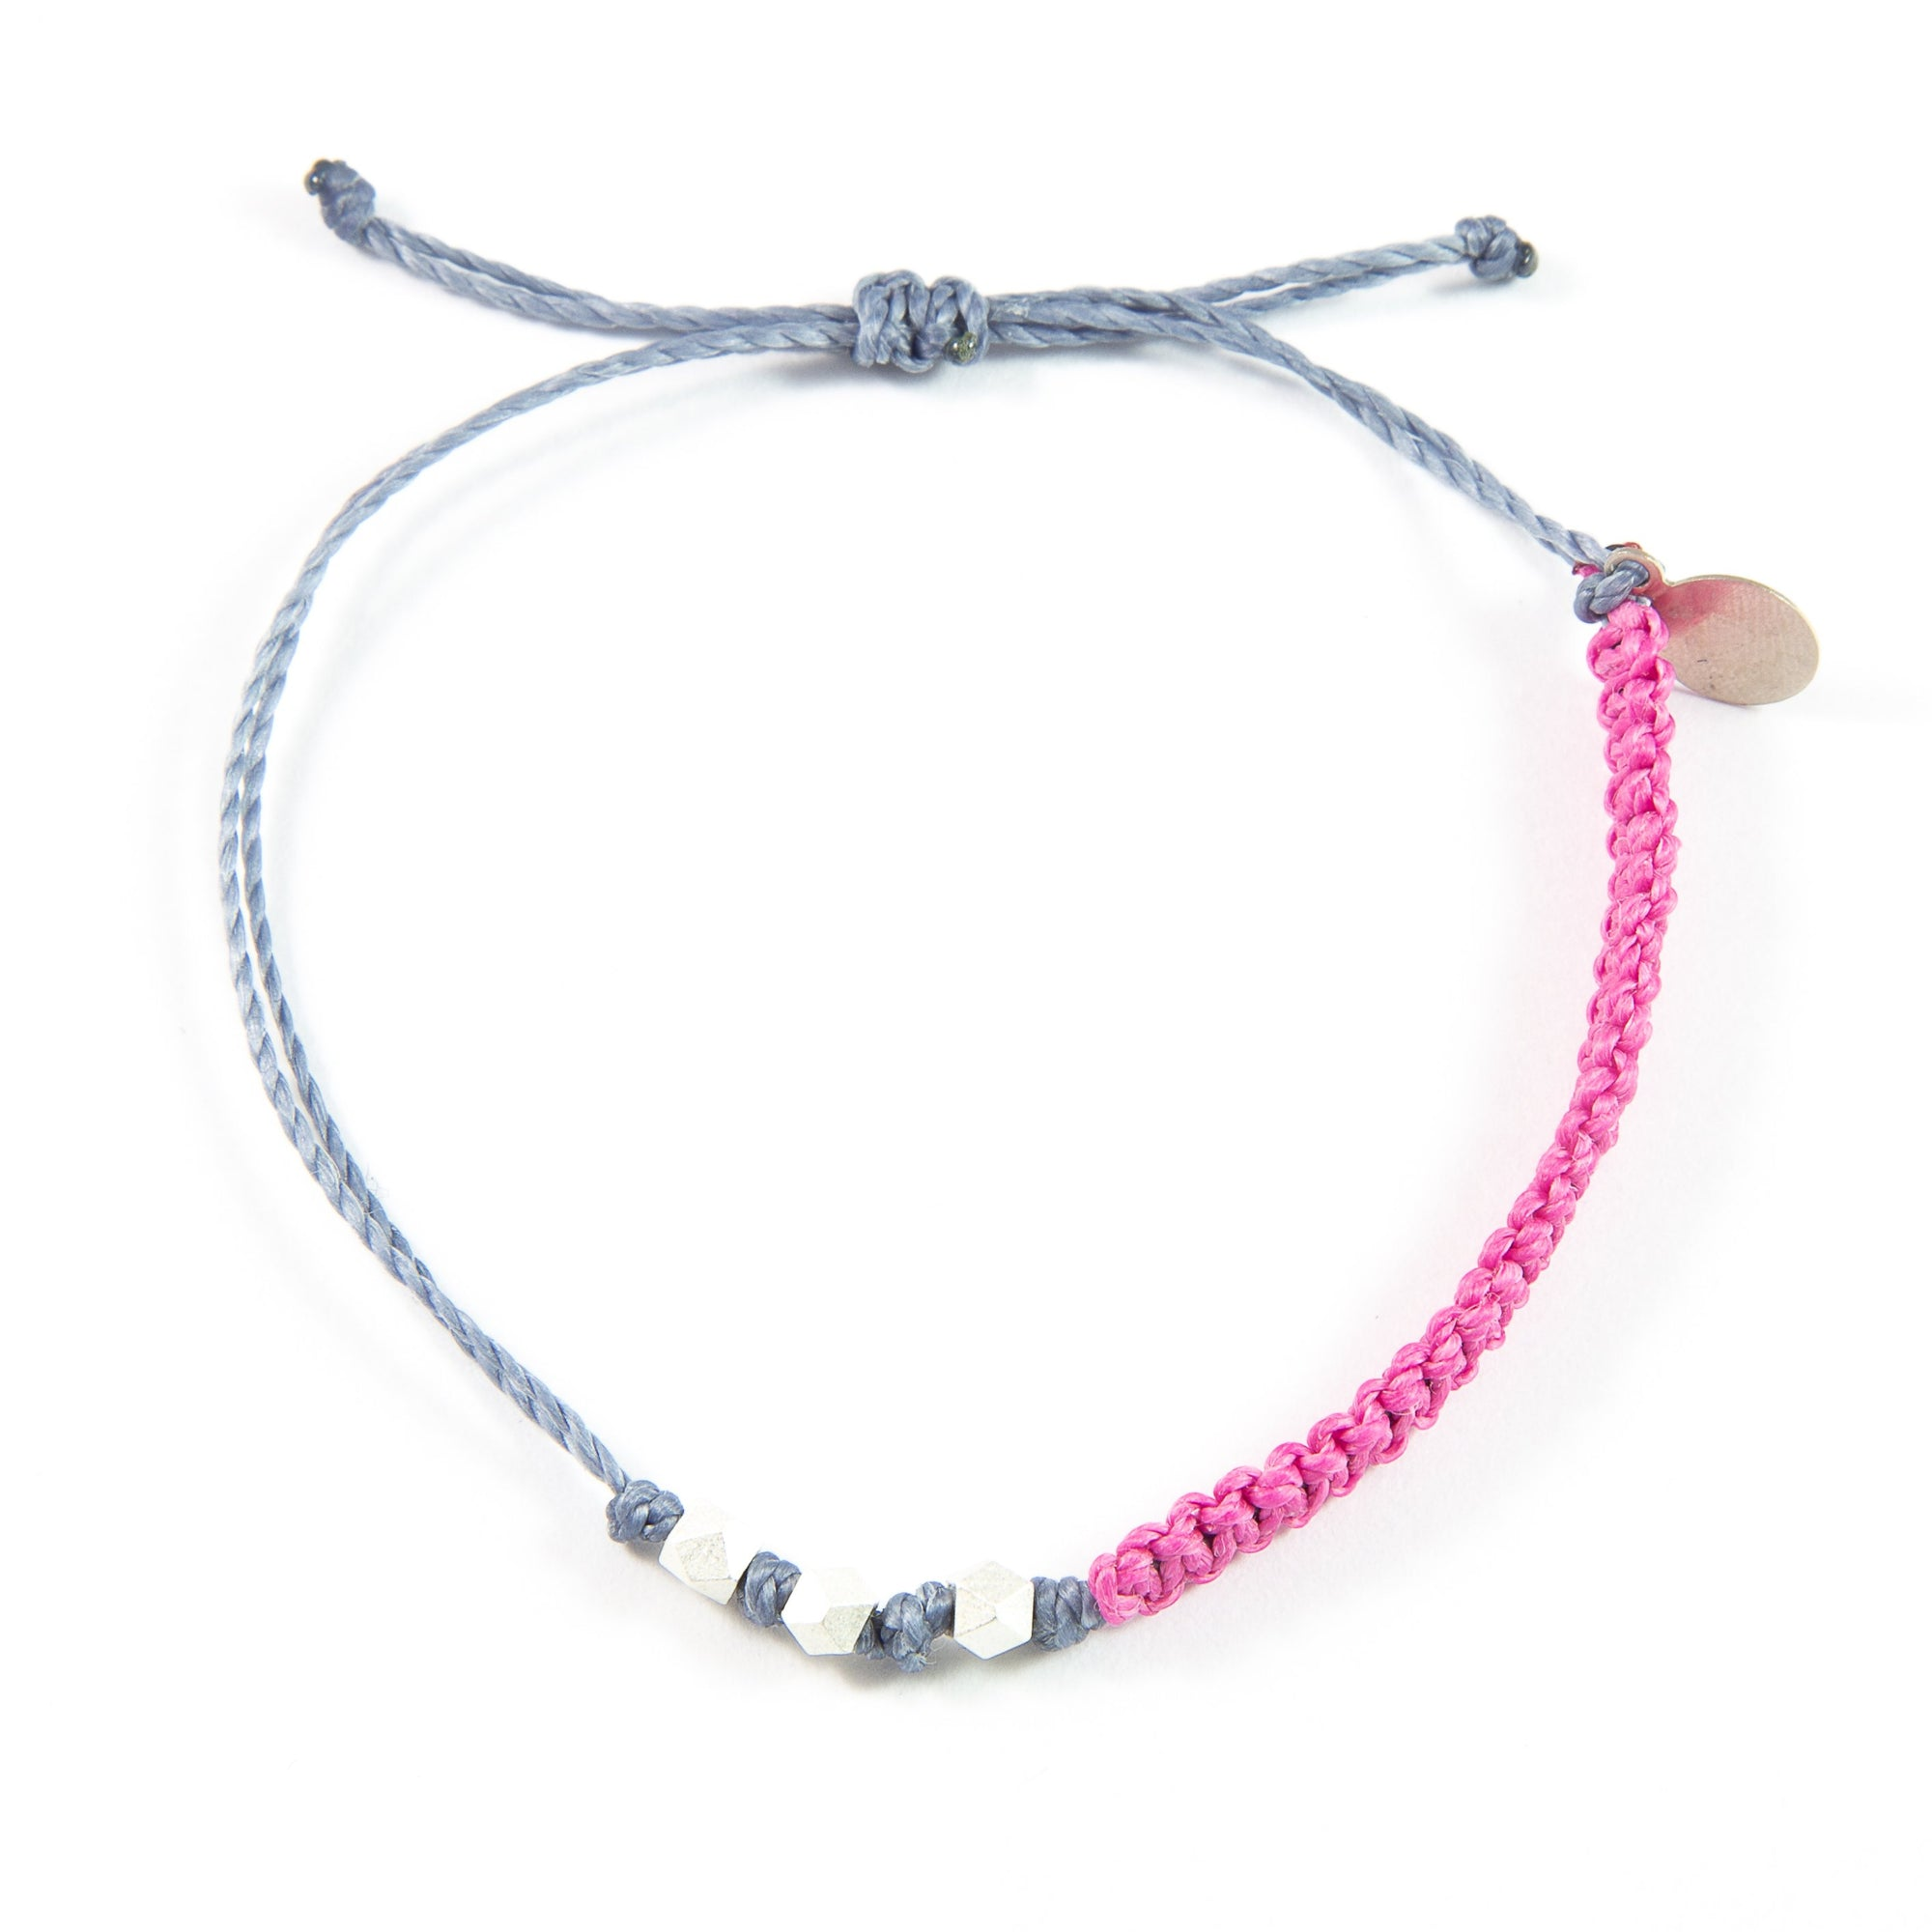 Rose & Denim Macrame Bracelet in Silver